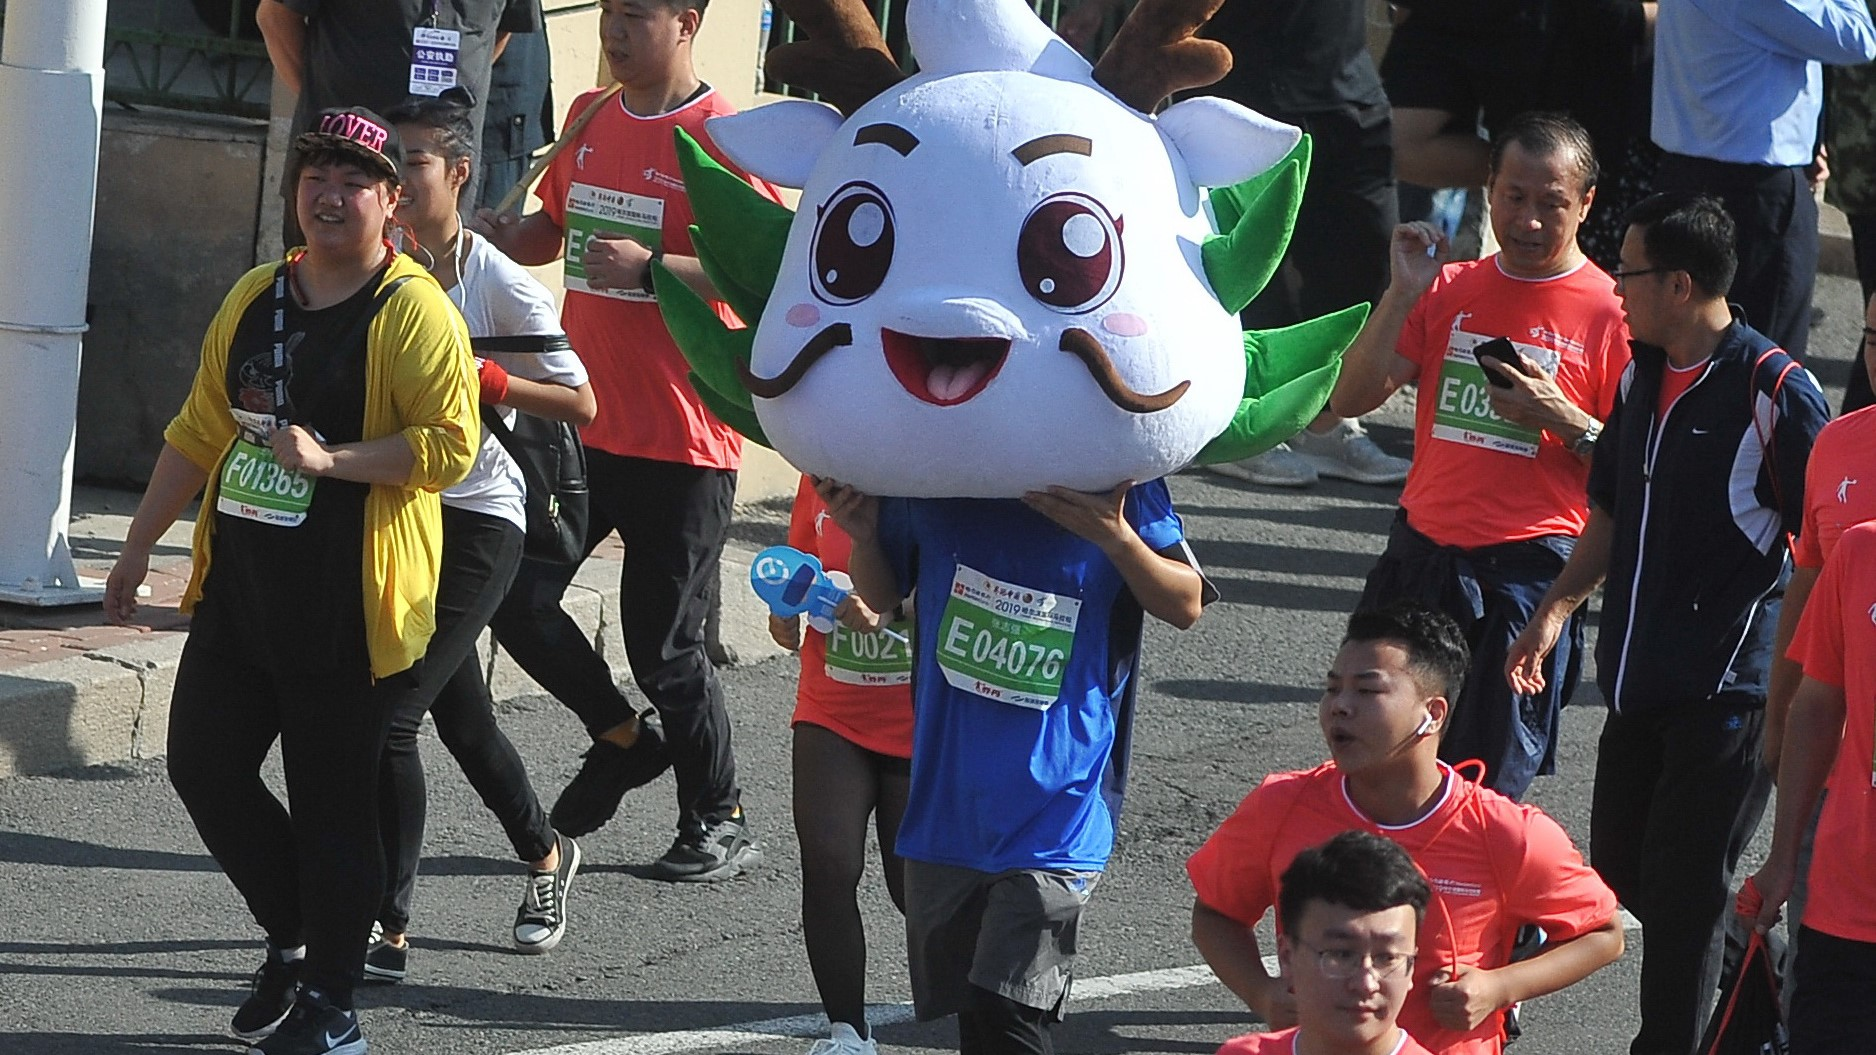 The Harbin International Marathon ended perfectly in 2019! Experts remind: science race, do according to one's ability